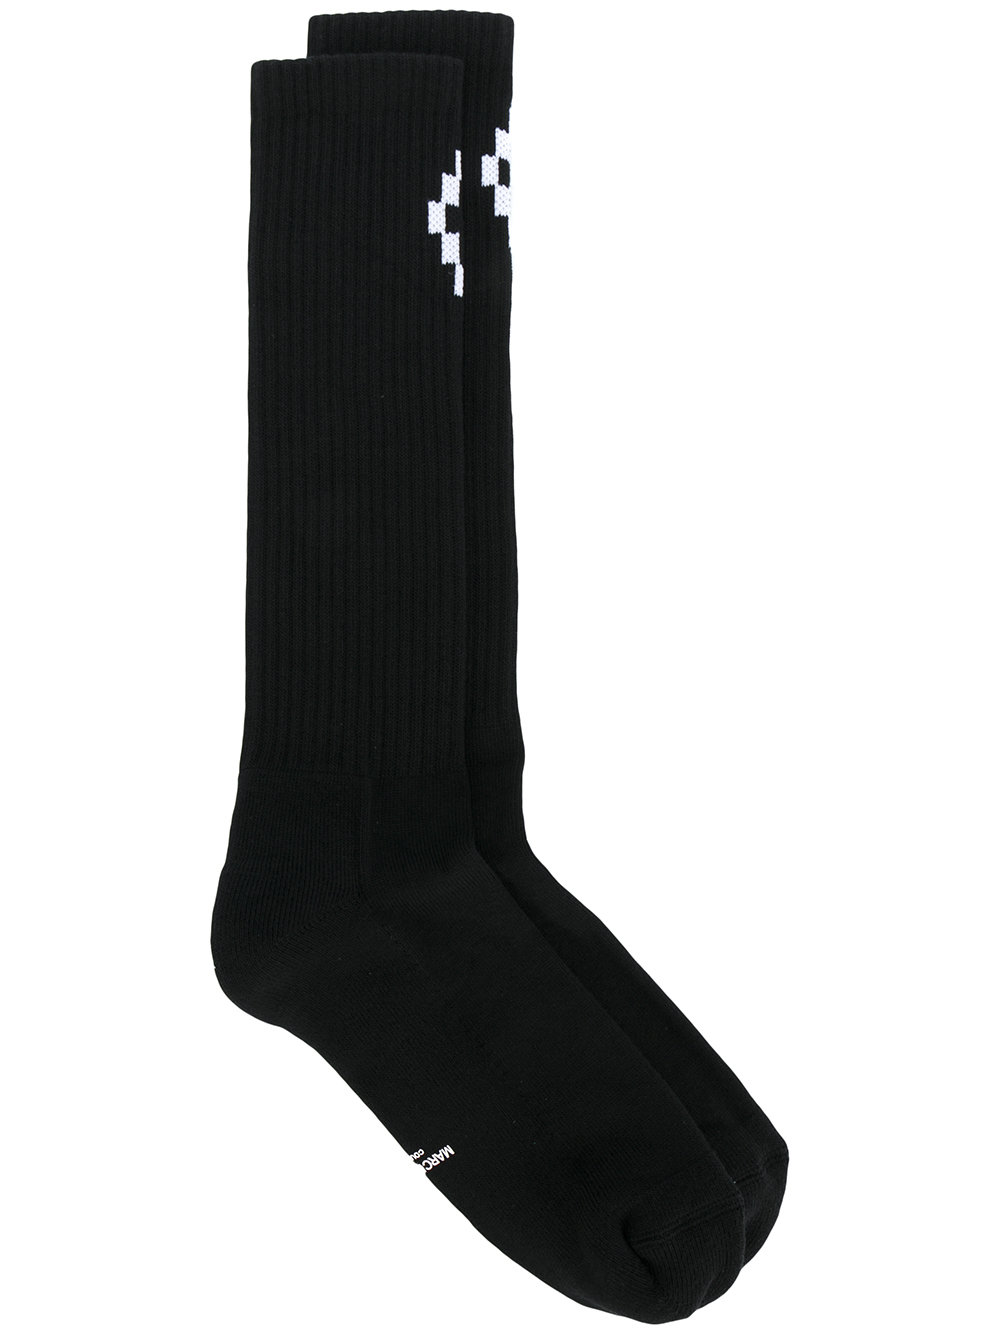 Marcelo Burlon Man CRUZ LONG SOCKS MILITARY GREEN BLACK